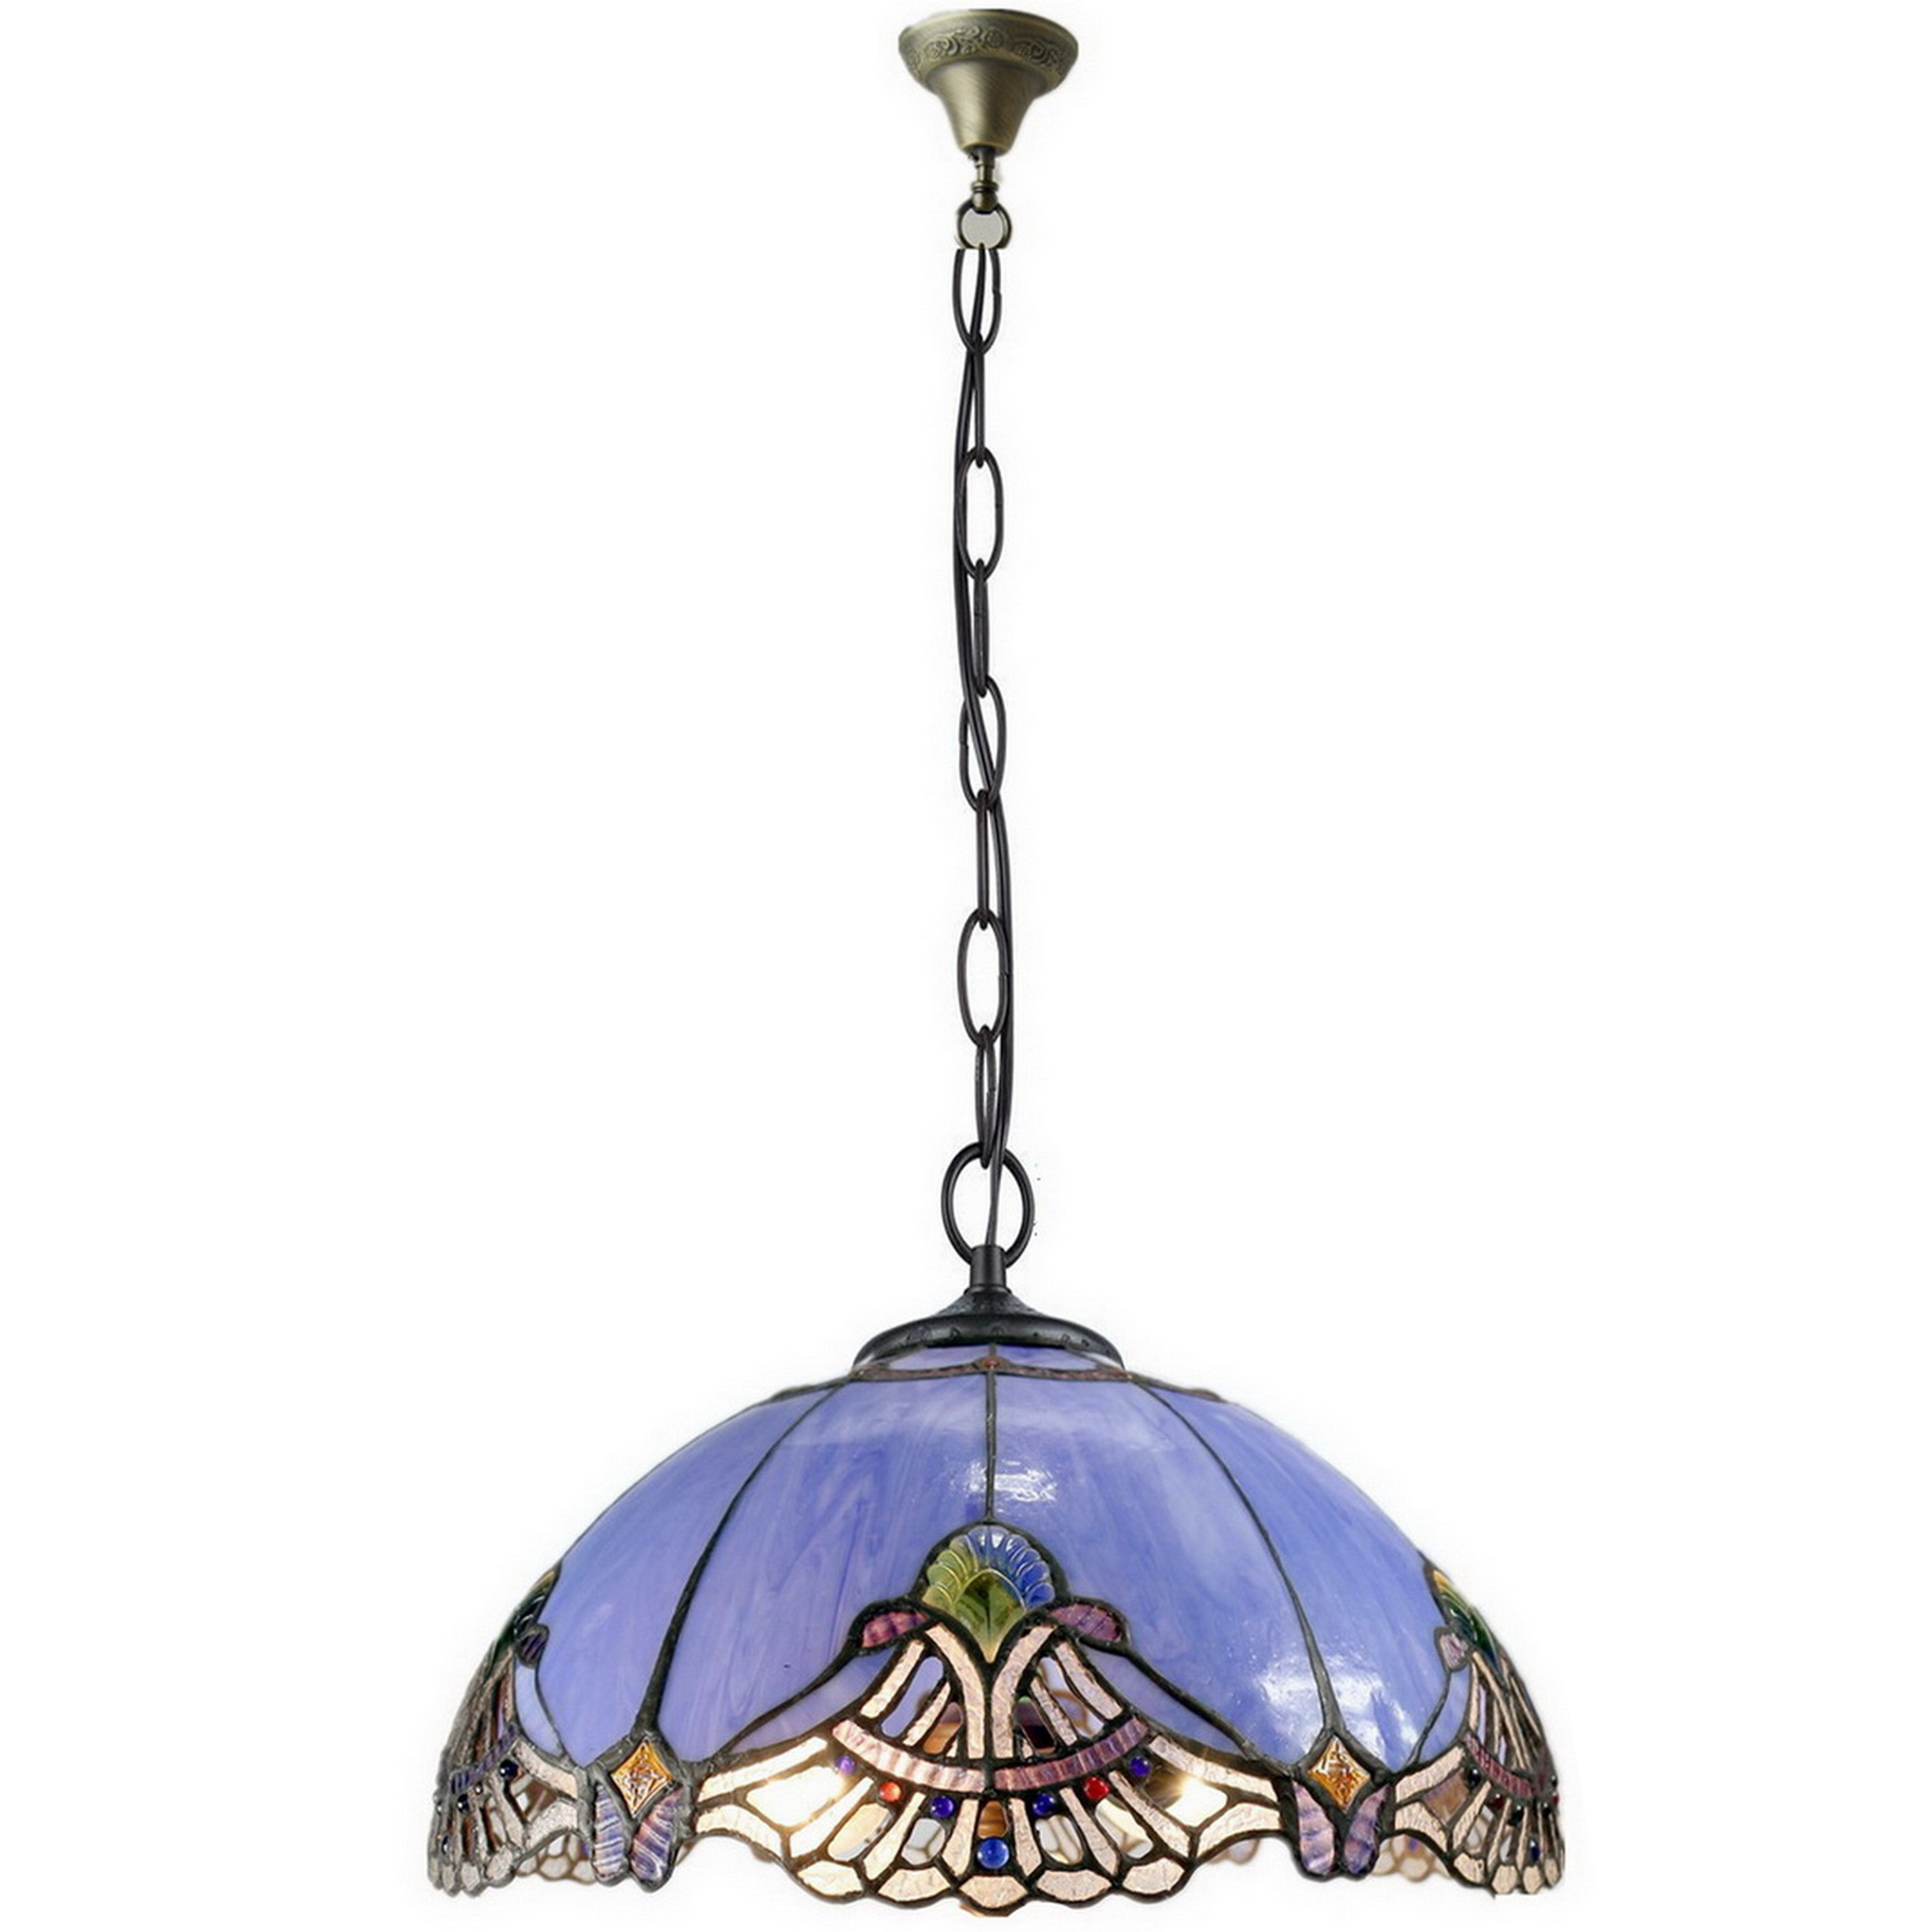 tiffany style pendant light fixture. SKU #JOAN1481 Lilac Baroque Tiffany Style Pendant Light Is Also Sometimes Listed Under The Following Manufacturer Numbers: C161072B Fixture